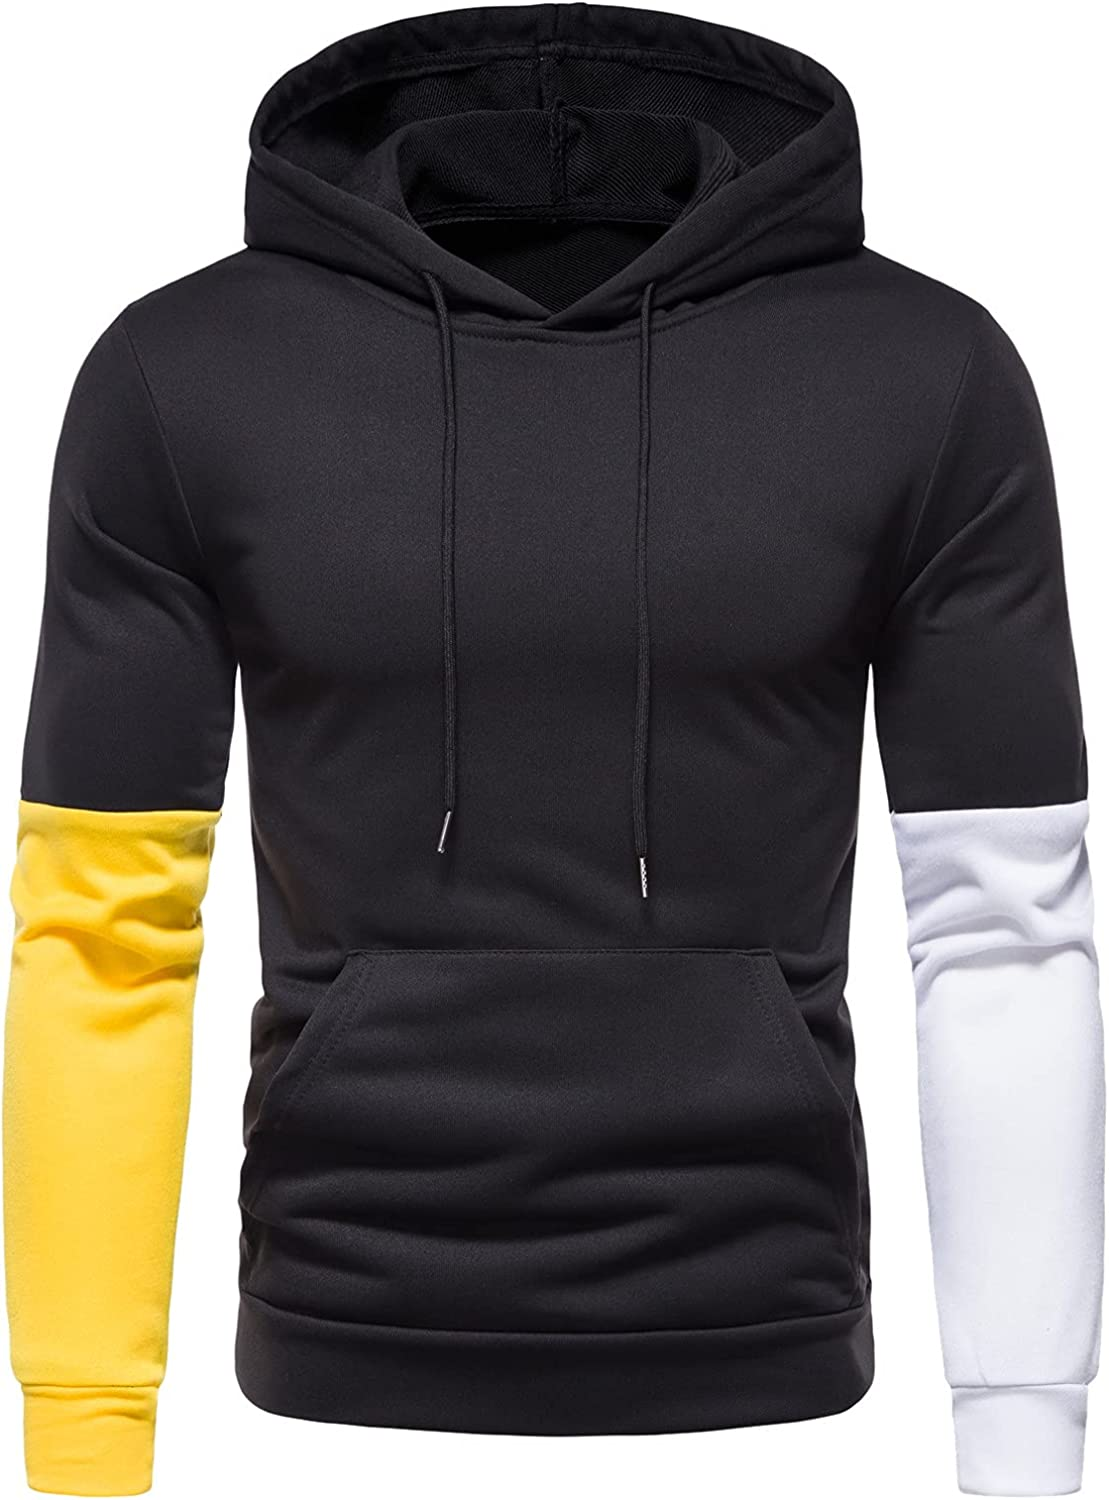 XXBR Hoodies for Mens, Fall Color Block Patchwork Pullover Workout Sports Drawstring Casual Hooded Sweatshirts Tops